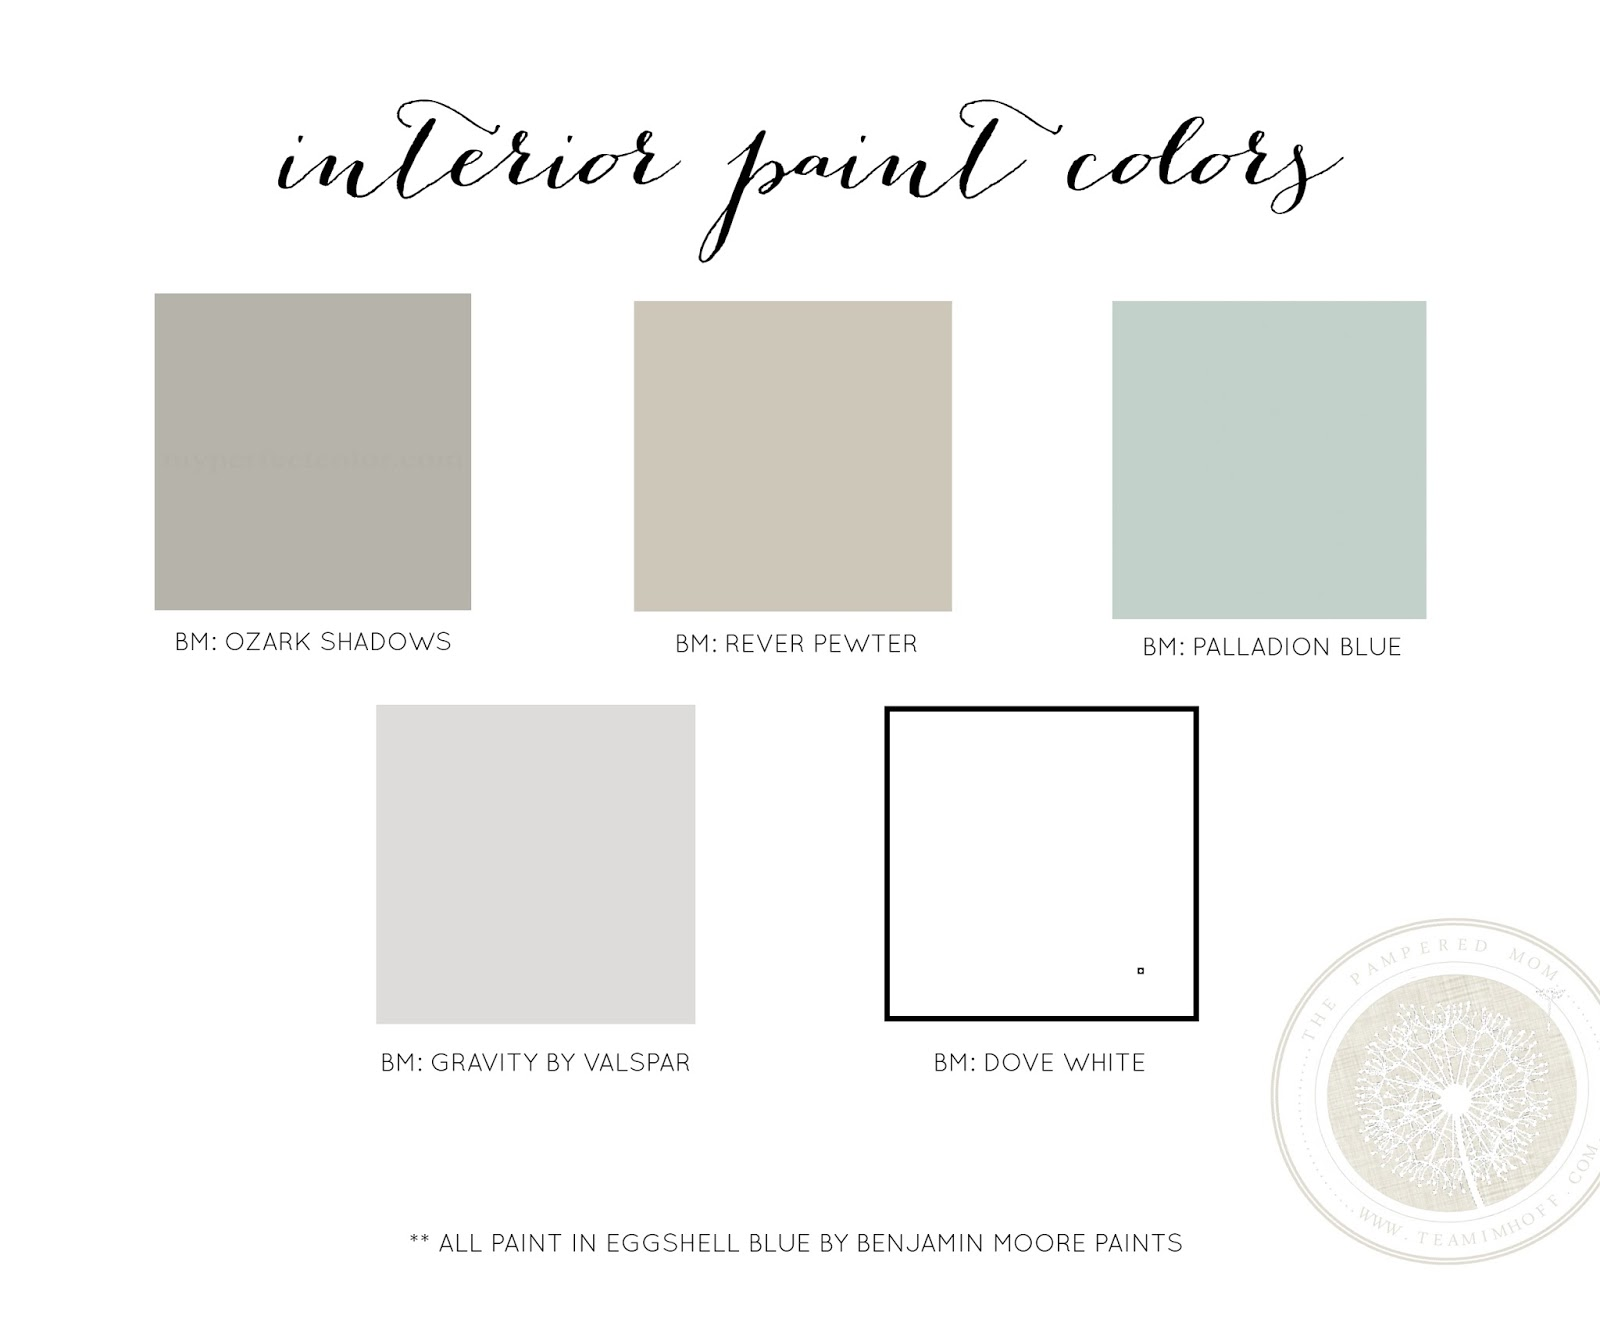 The pampered mom interior paint colors - Benjamin moore interior paint colors ...